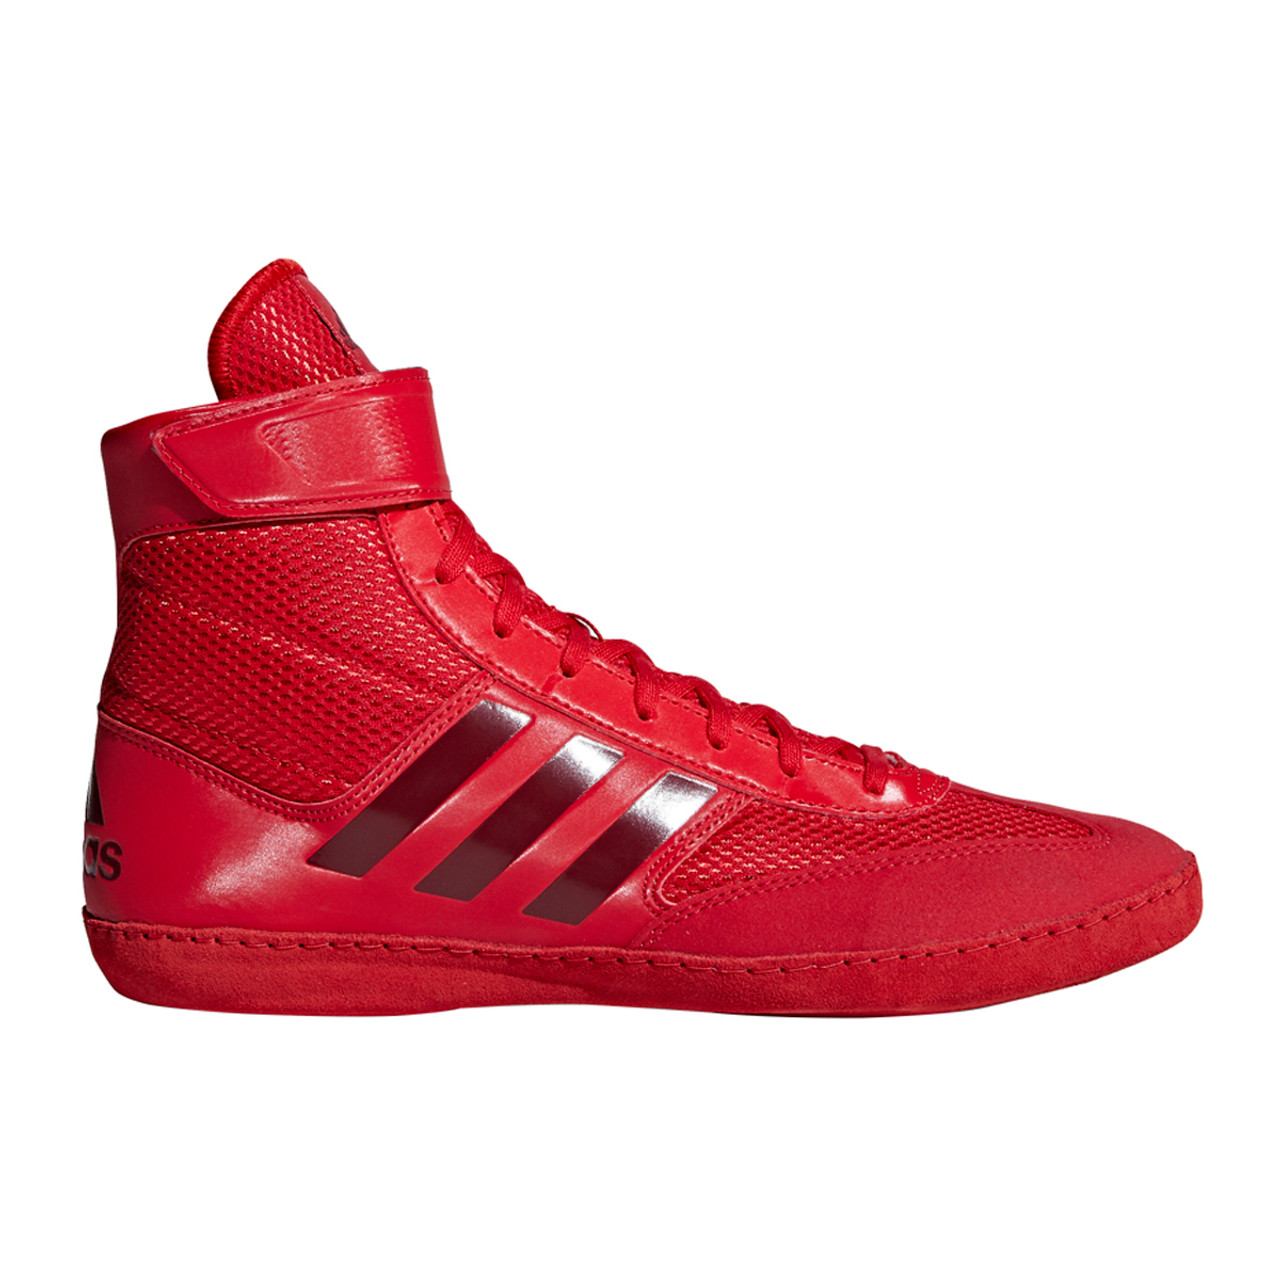 f2a575e727f Adidas Combat Speed 5 Men s Wrestling Shoes AC7499 - Red